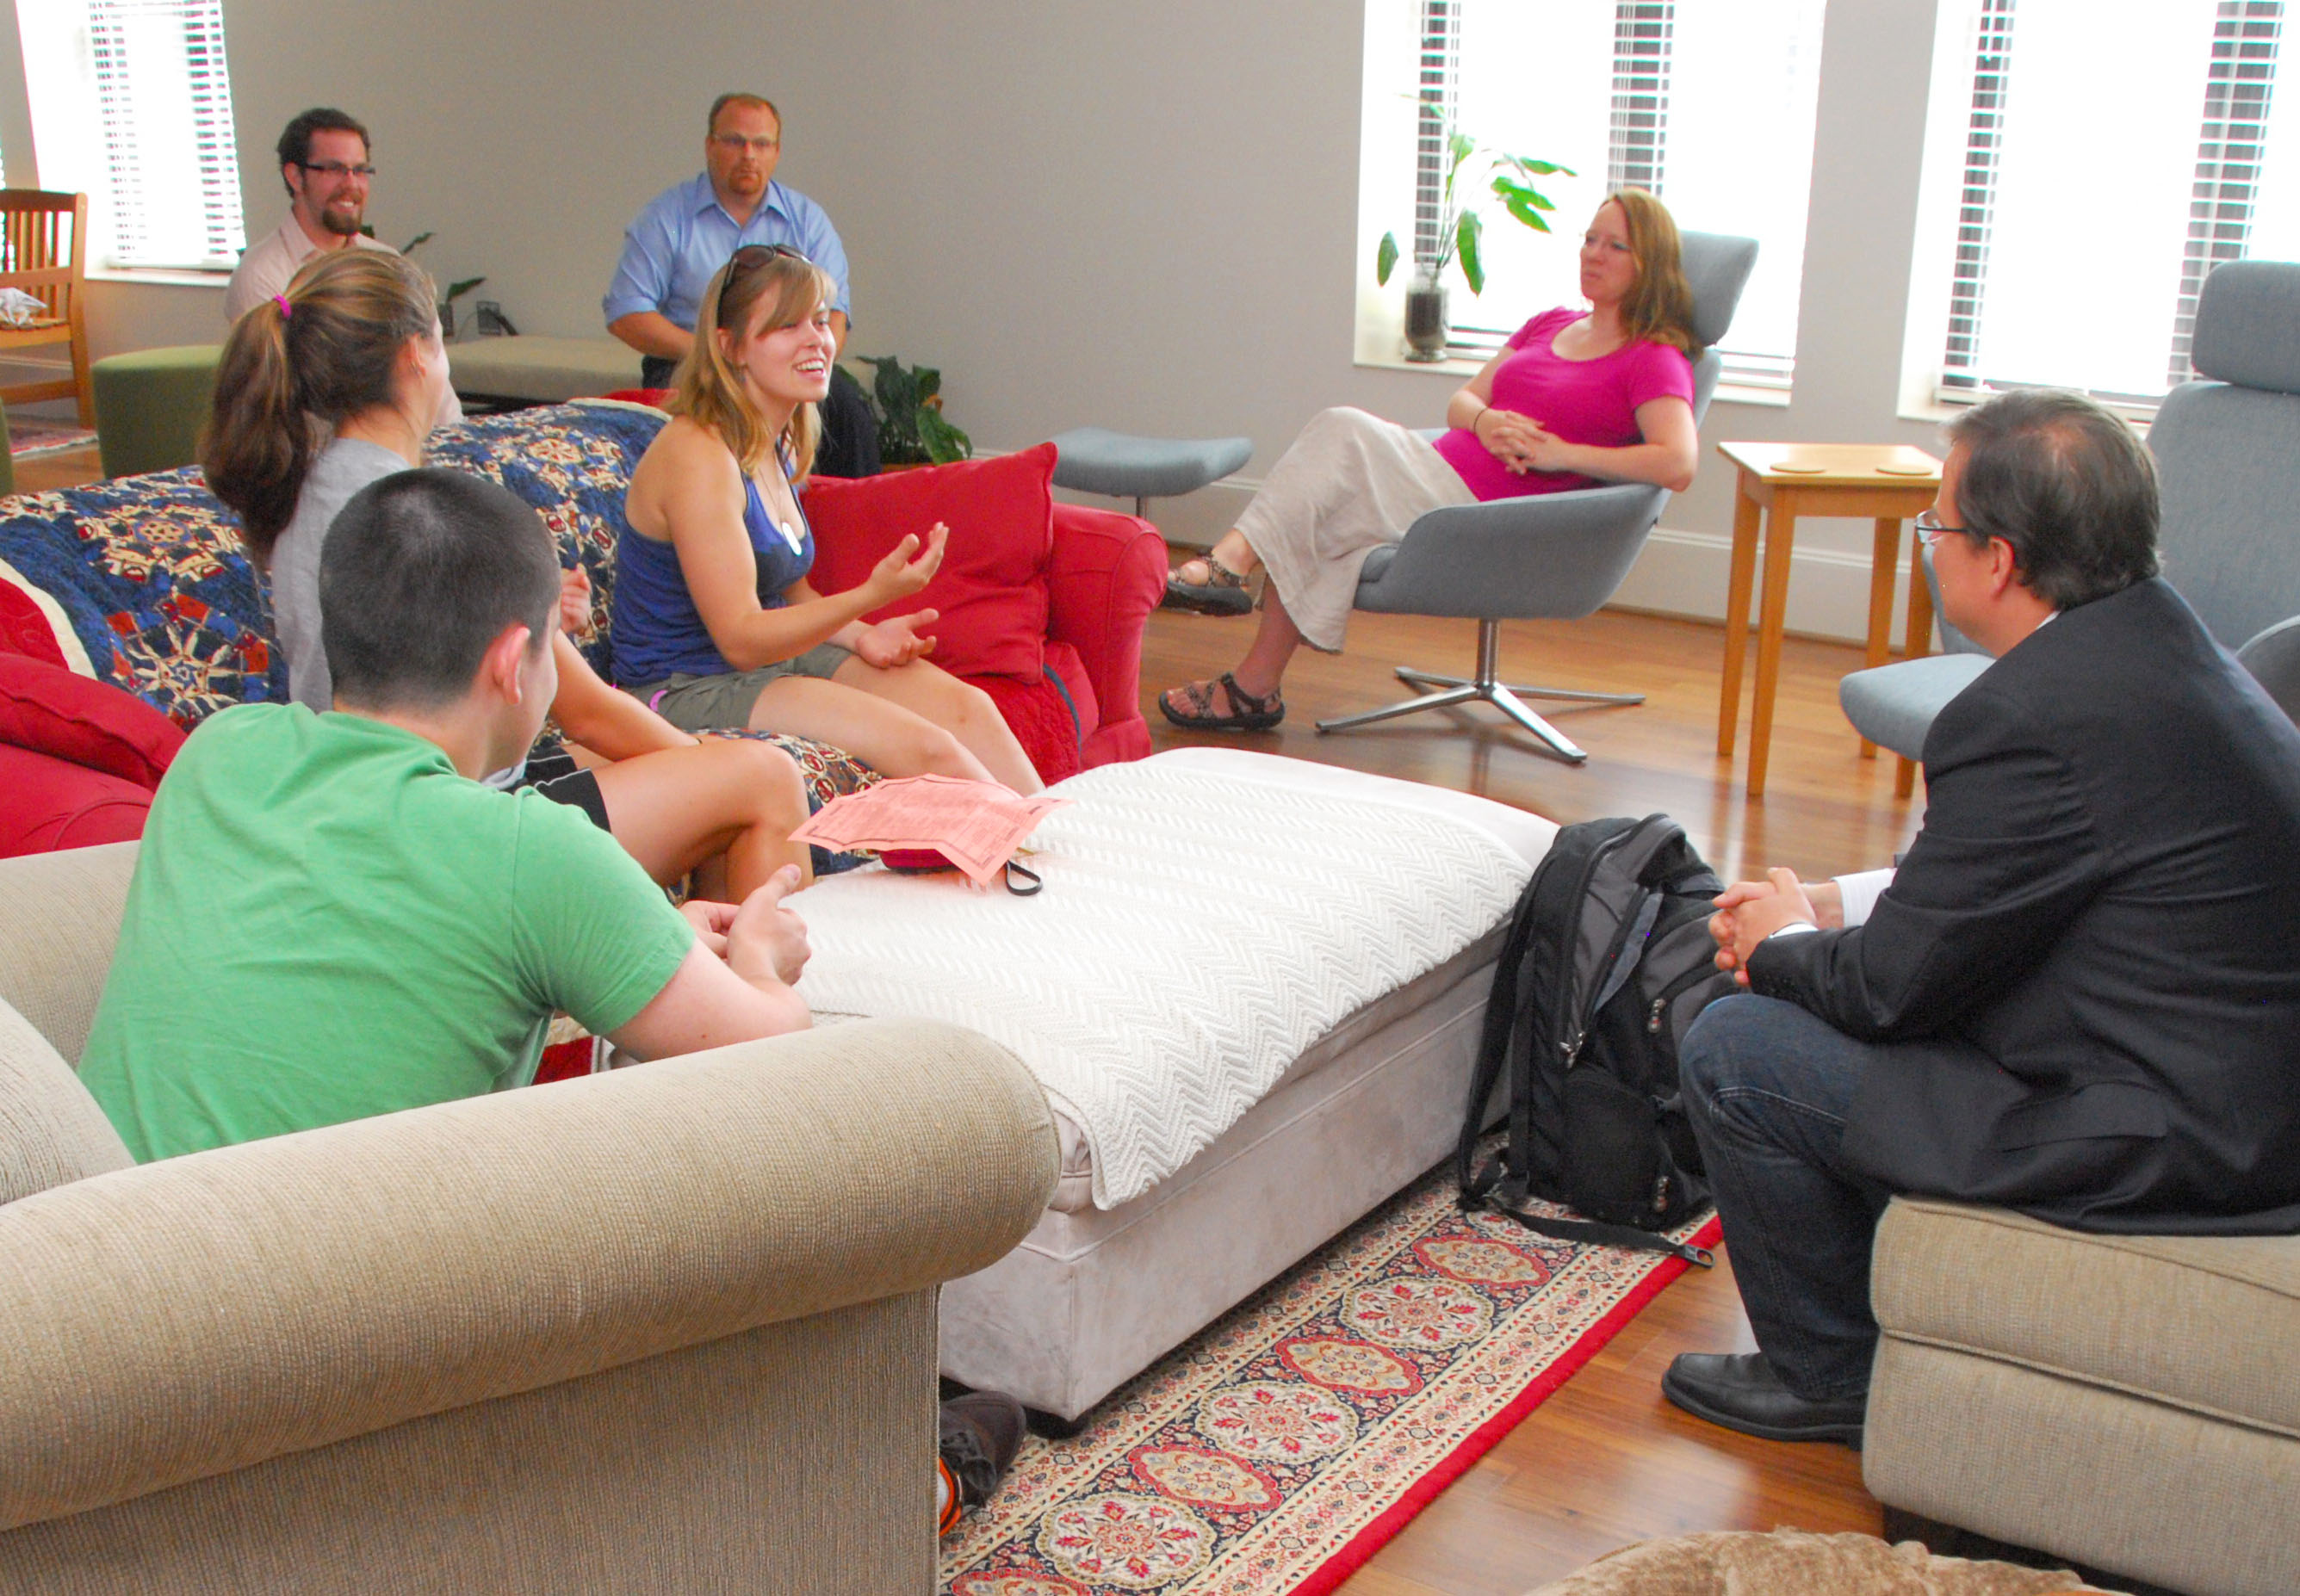 Students, faculty, and faculty principals talk in the sitting room at the Honors Residential College.